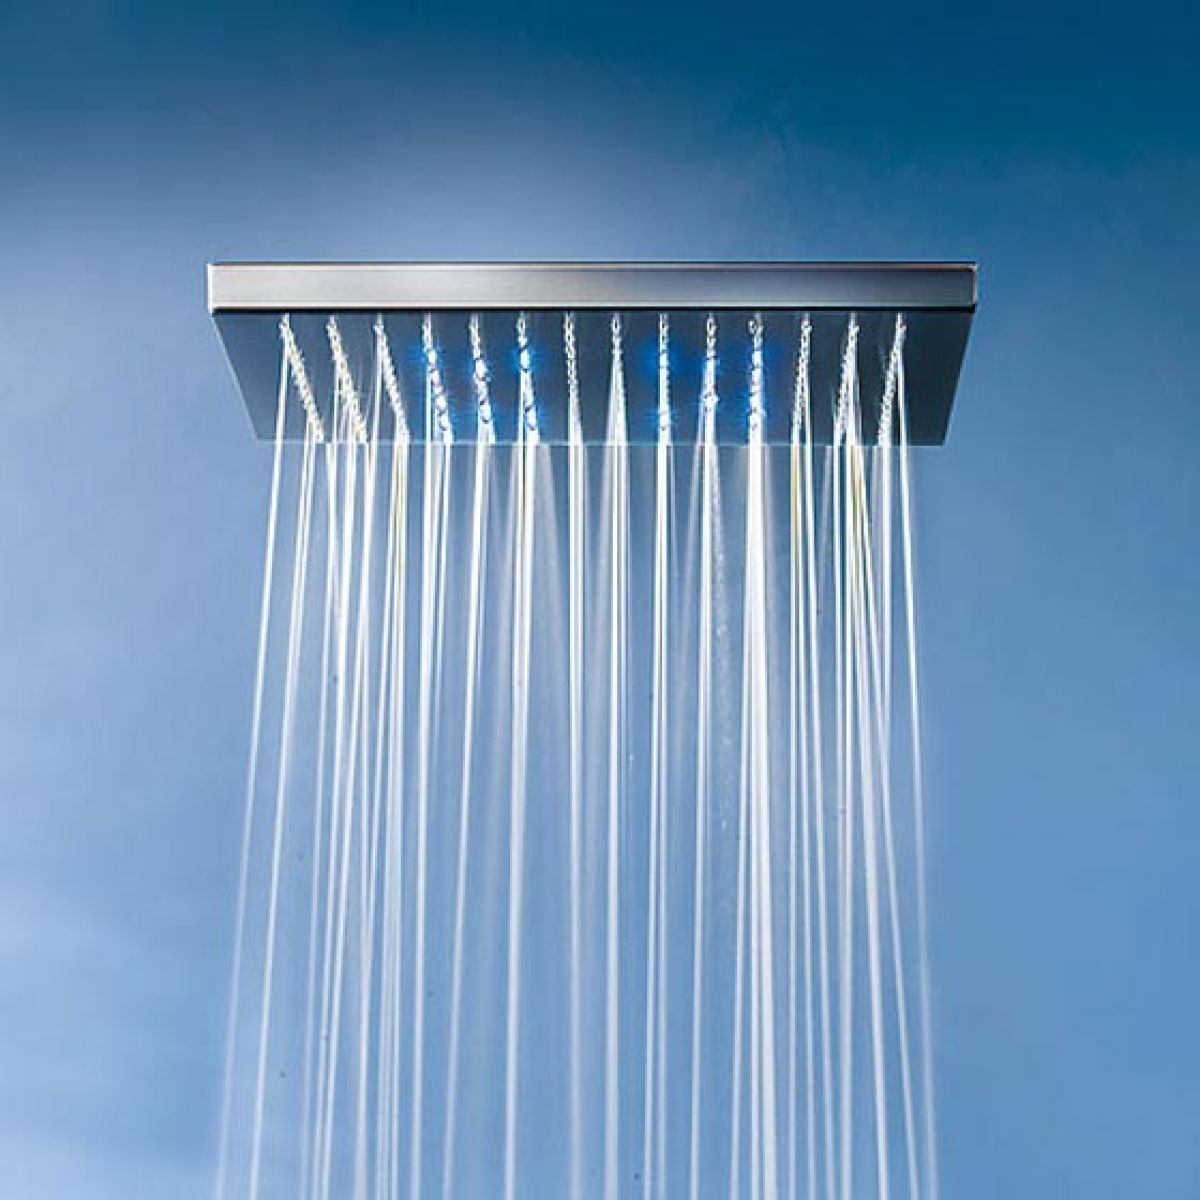 Most Expensive showers in the World